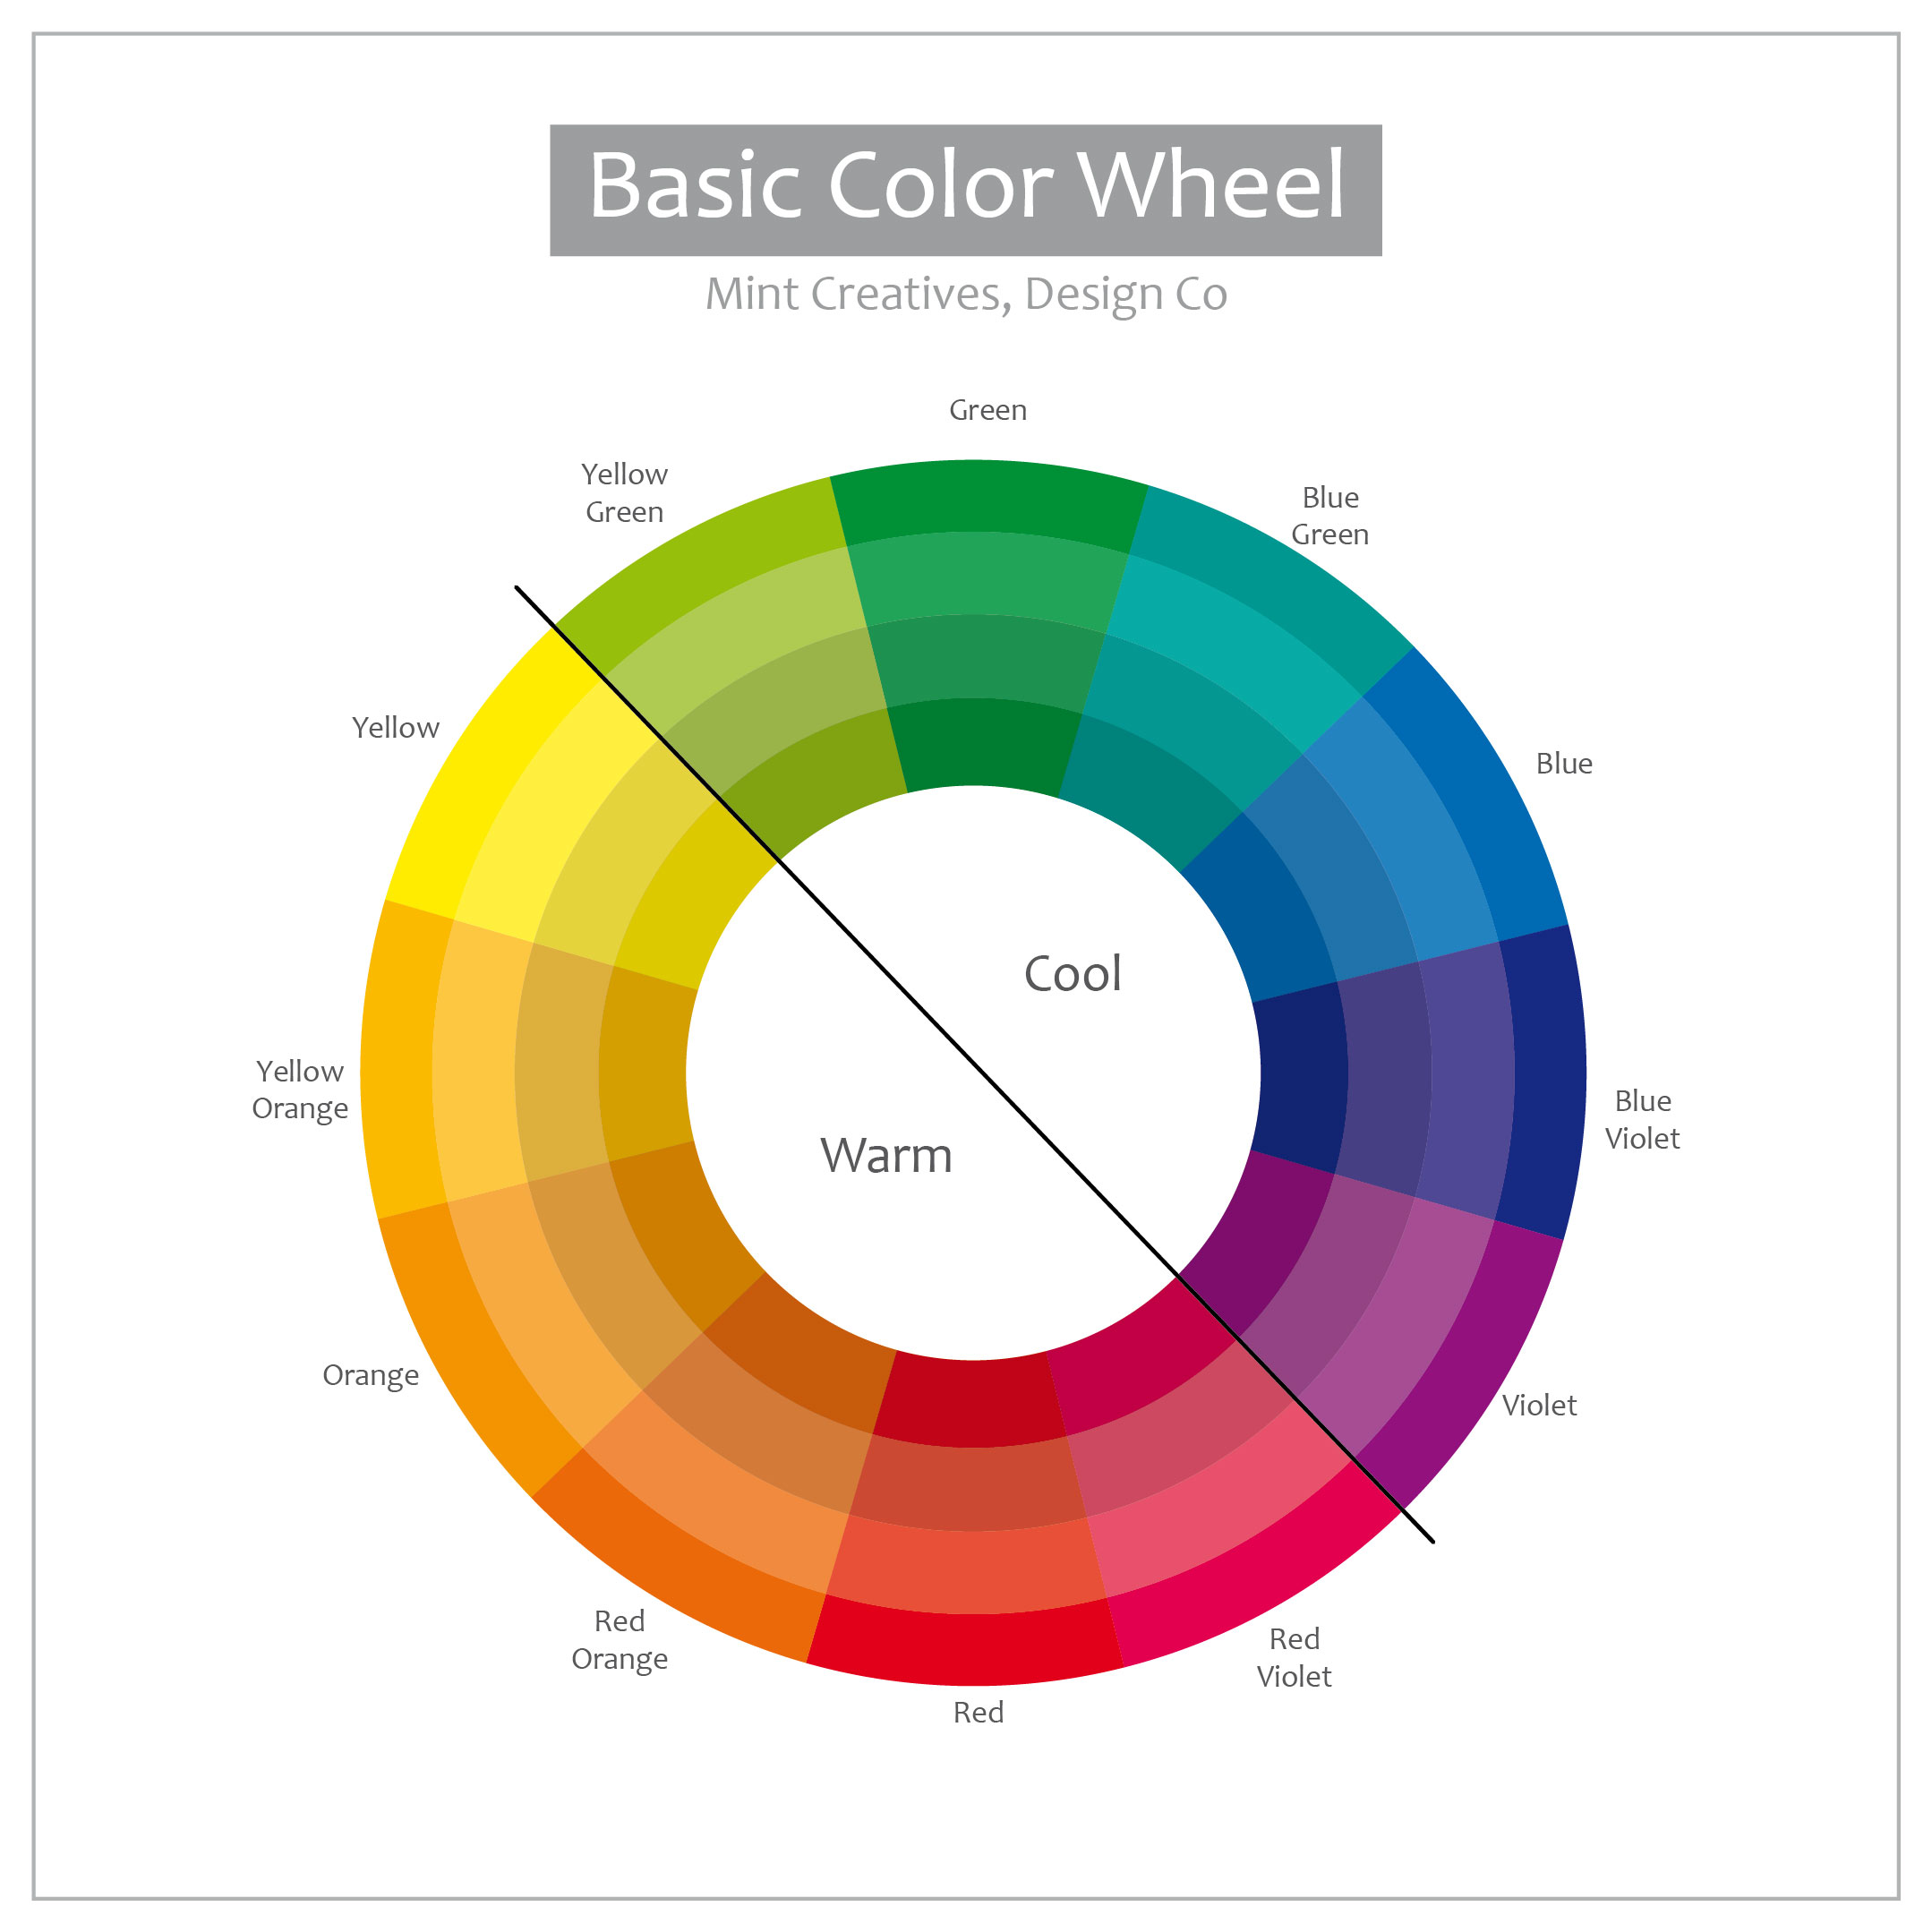 The color wheel mint creatives design co How does the colour wheel work